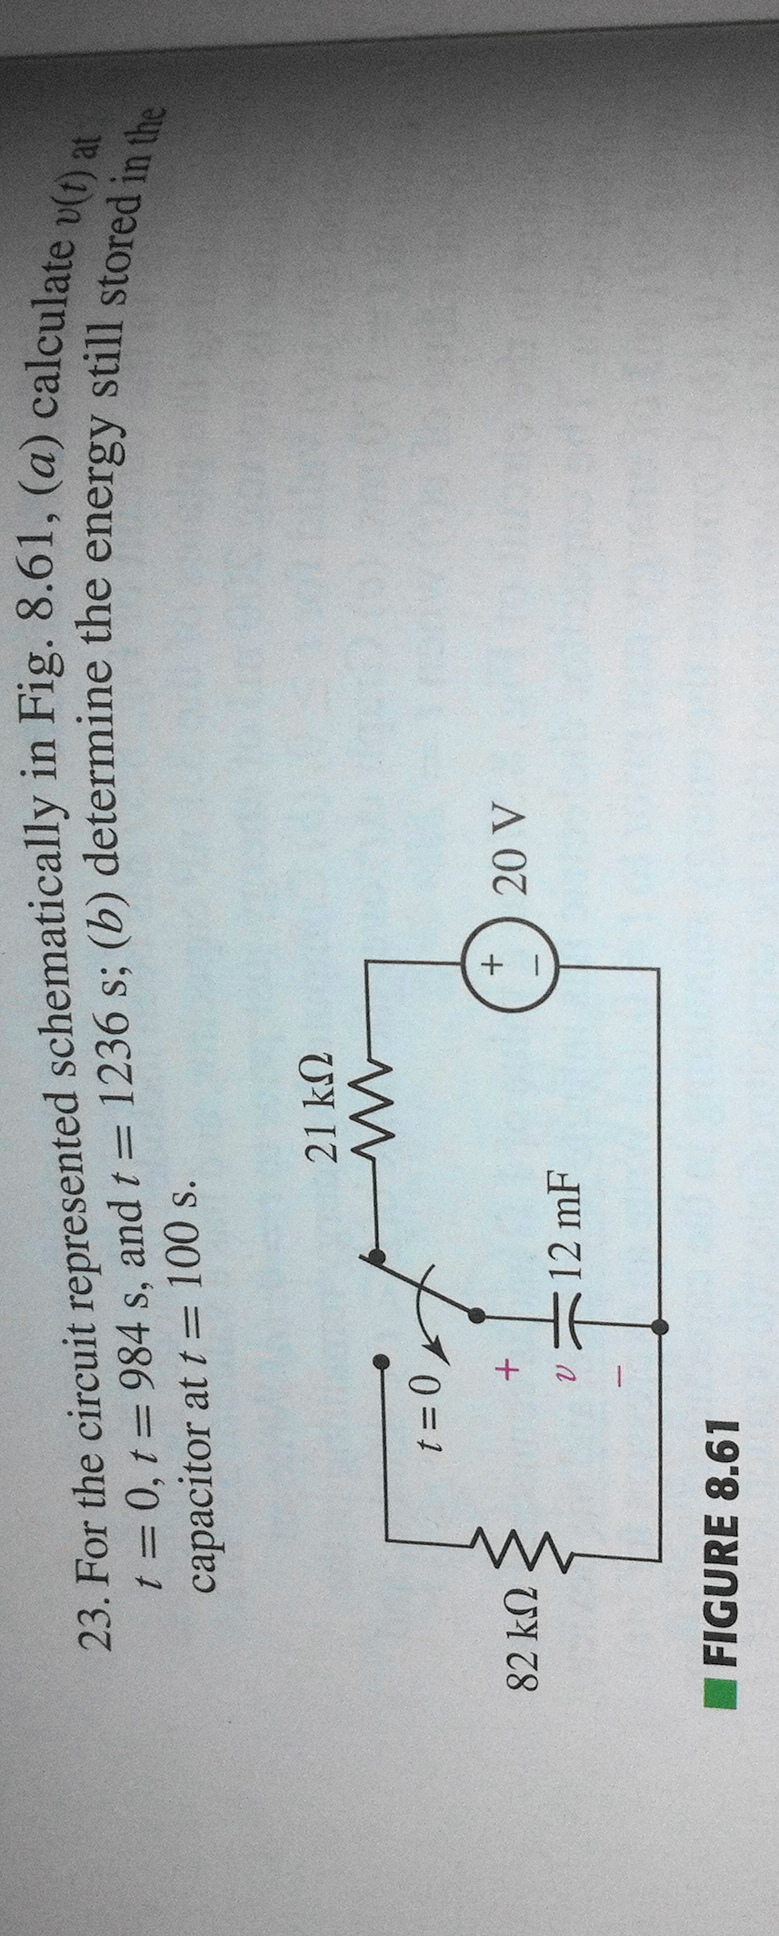 For the circuit represented schematically in Fig.